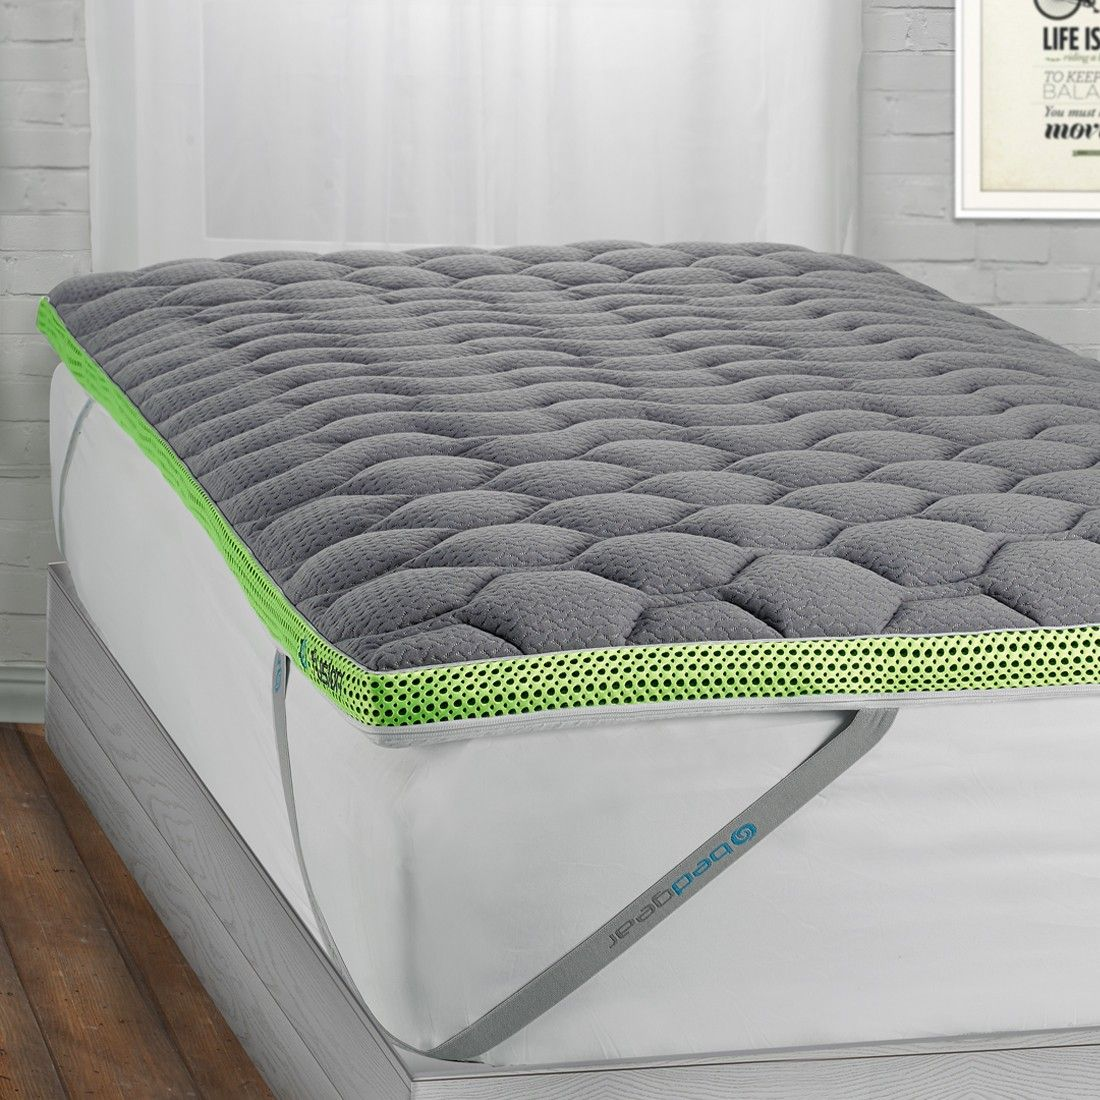 The Fusion Dri Tec Mattress Topper Is Designed To Wick Away Heat And Moisture